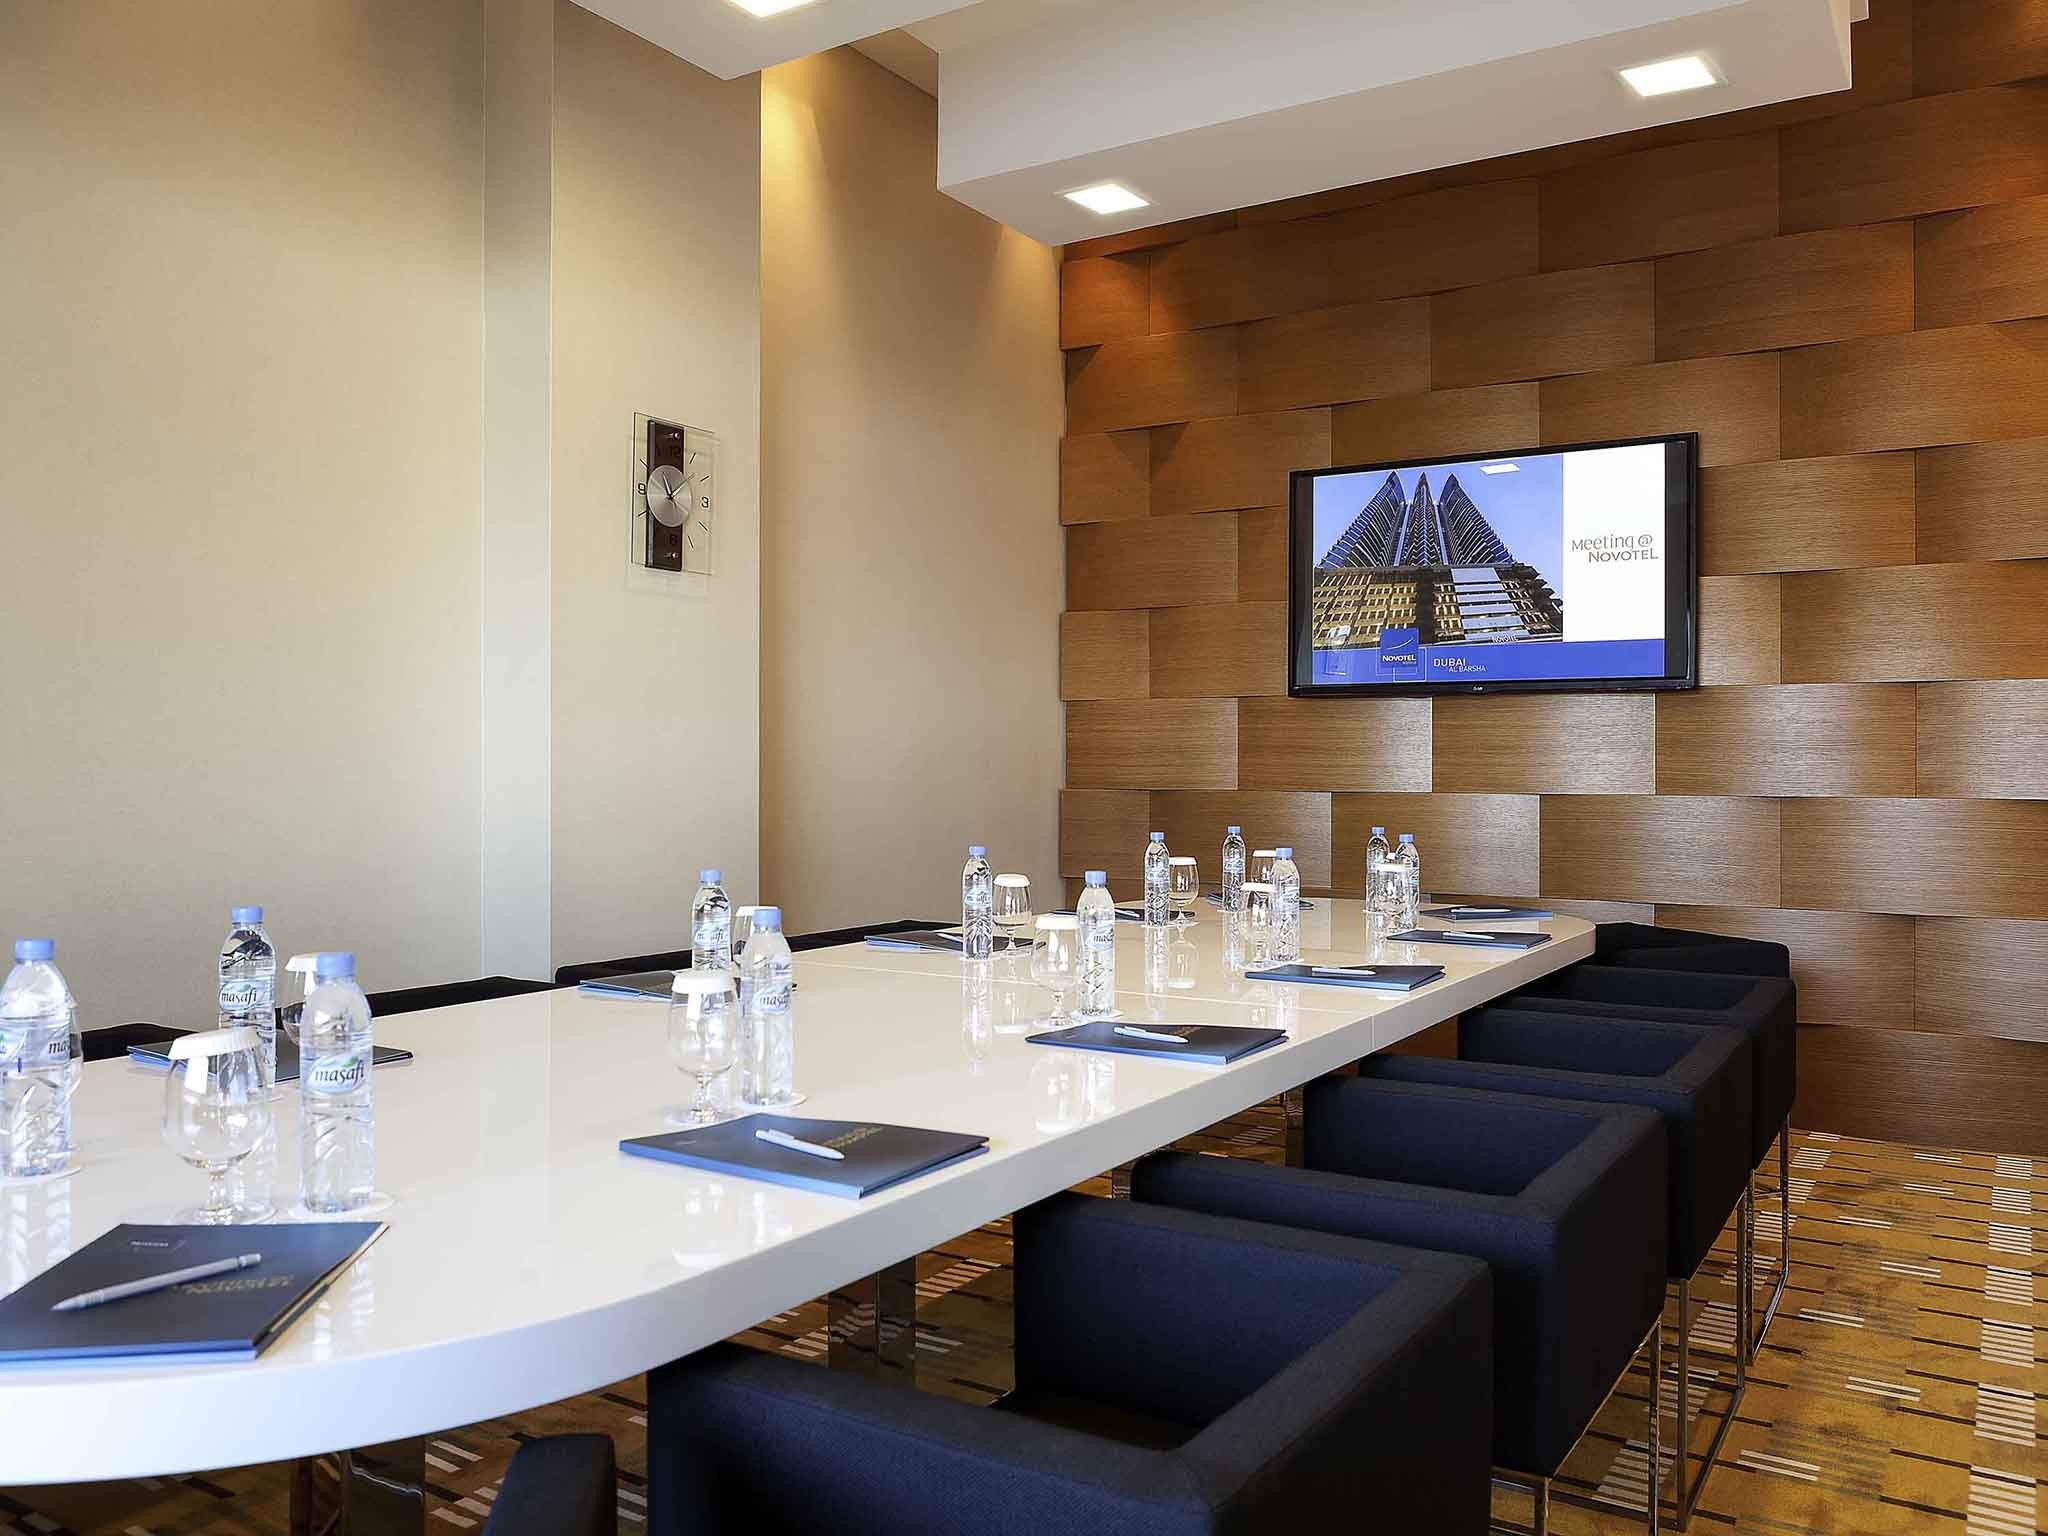 Hotels With Conference Rooms Near Me